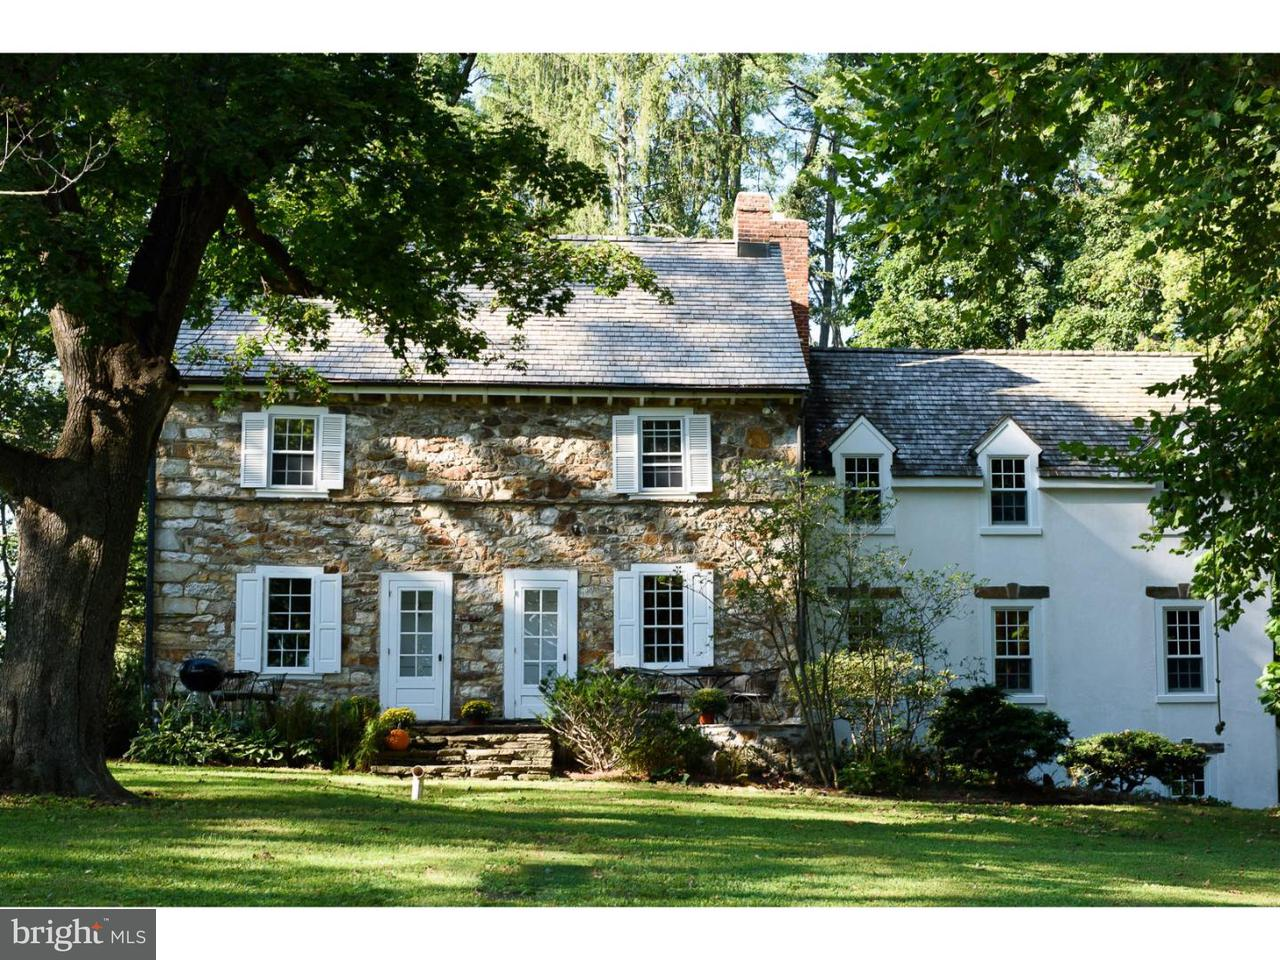 Single Family Home for Sale at 700 CLAY CREEK Road Avondale, Pennsylvania 19311 United States